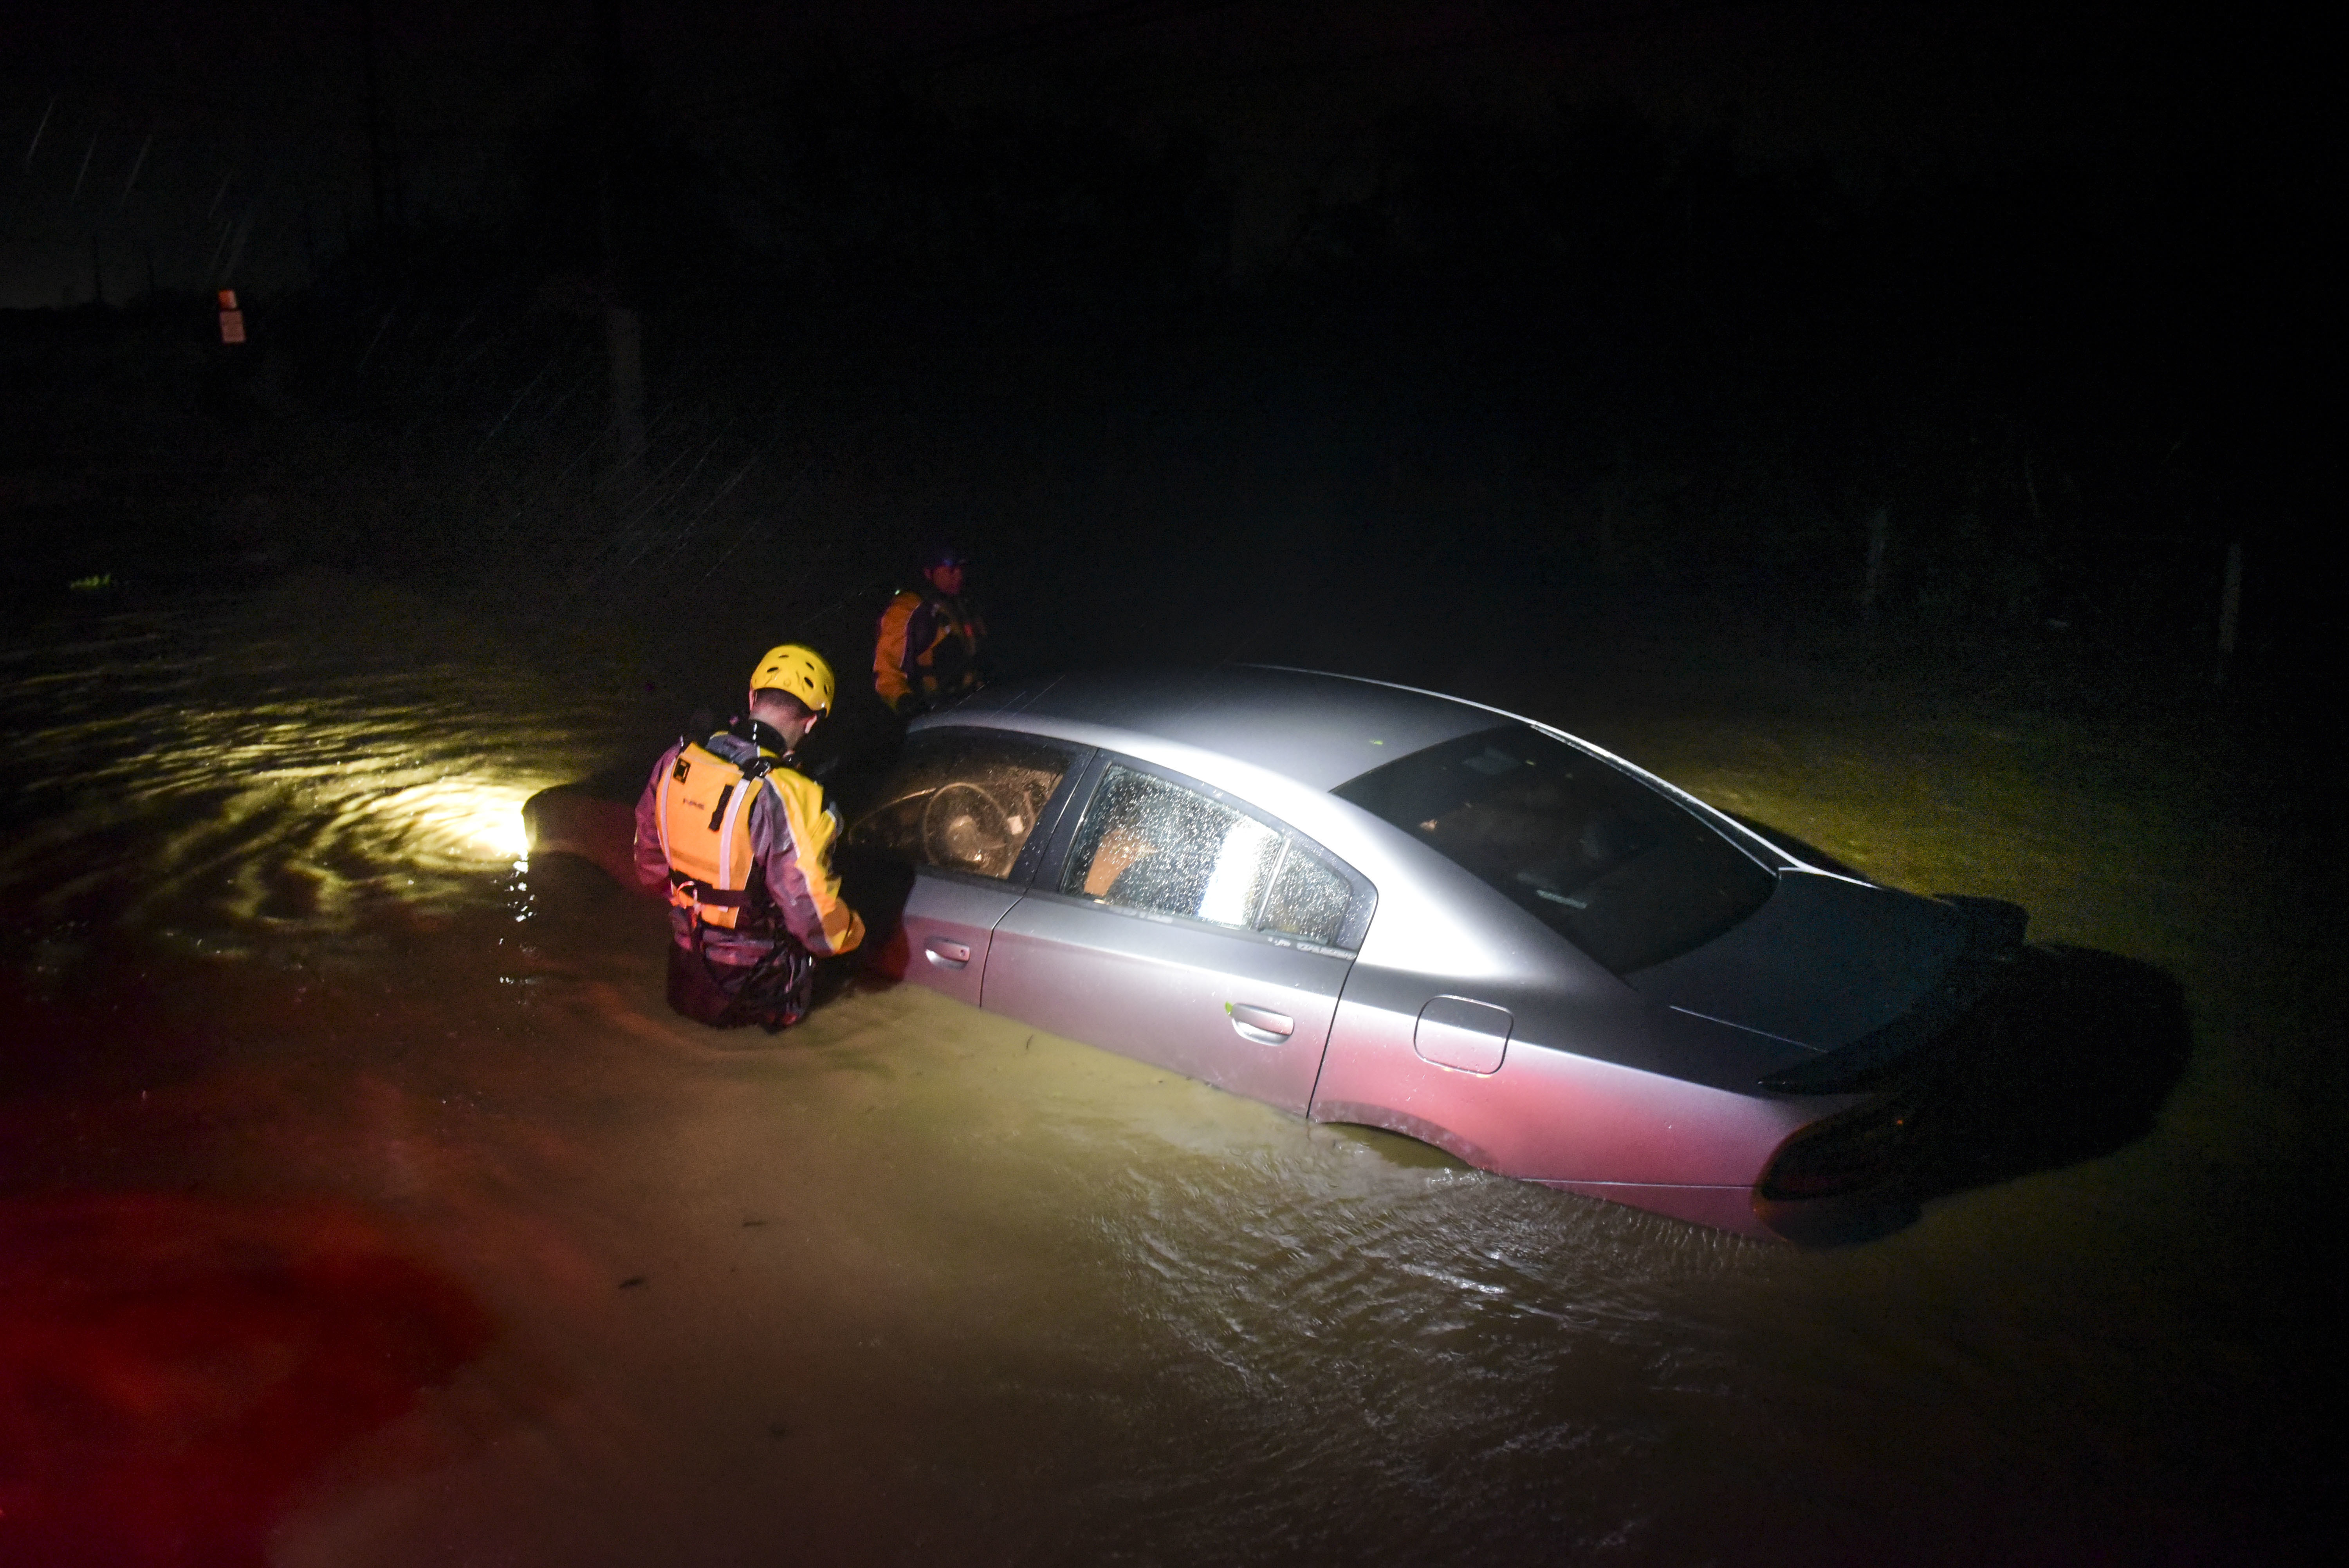 Rescue staff from the Municipal Emergency Management Agency investigate an empty flooded car in Fajardo, Puerto Rico on Wednesday, Sept. 6, 2017.